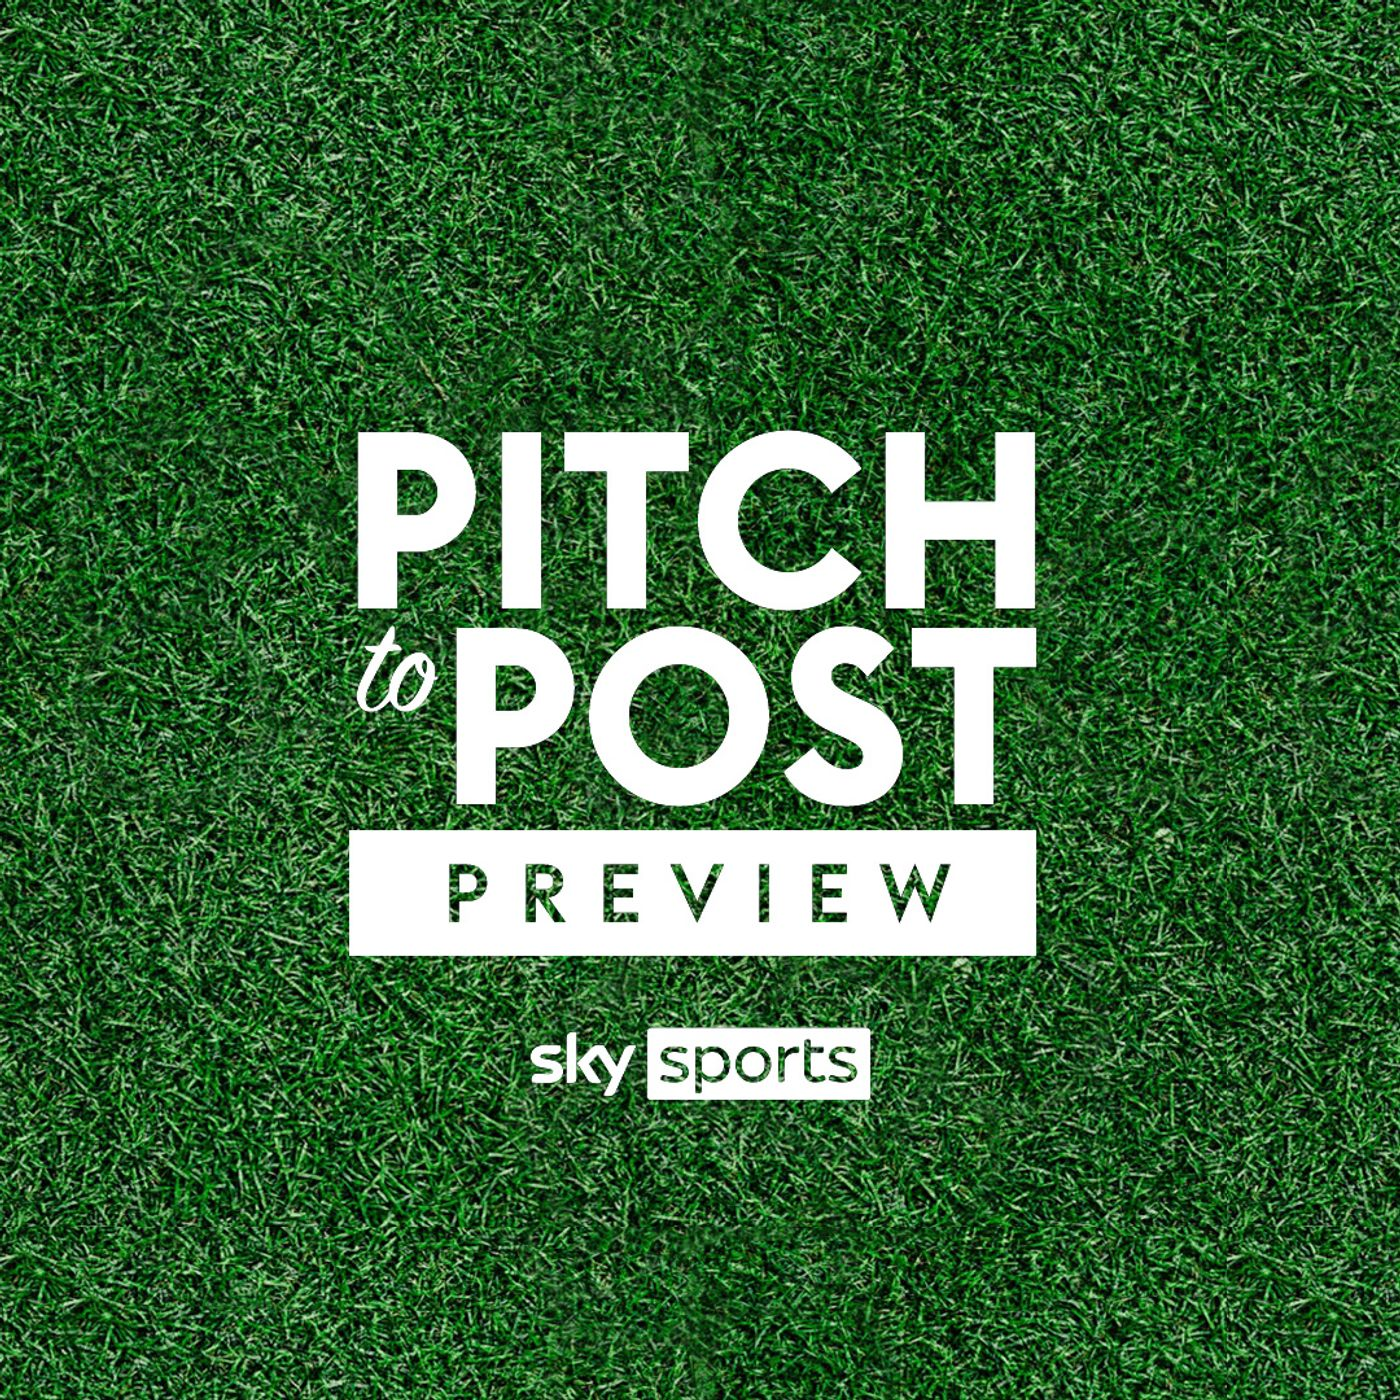 Pitch to Post Preview: Are Chelsea and Spurs title contenders? Plus Man Utd 'leader' Bruno Fernandes and Arsenal's creativity problems.